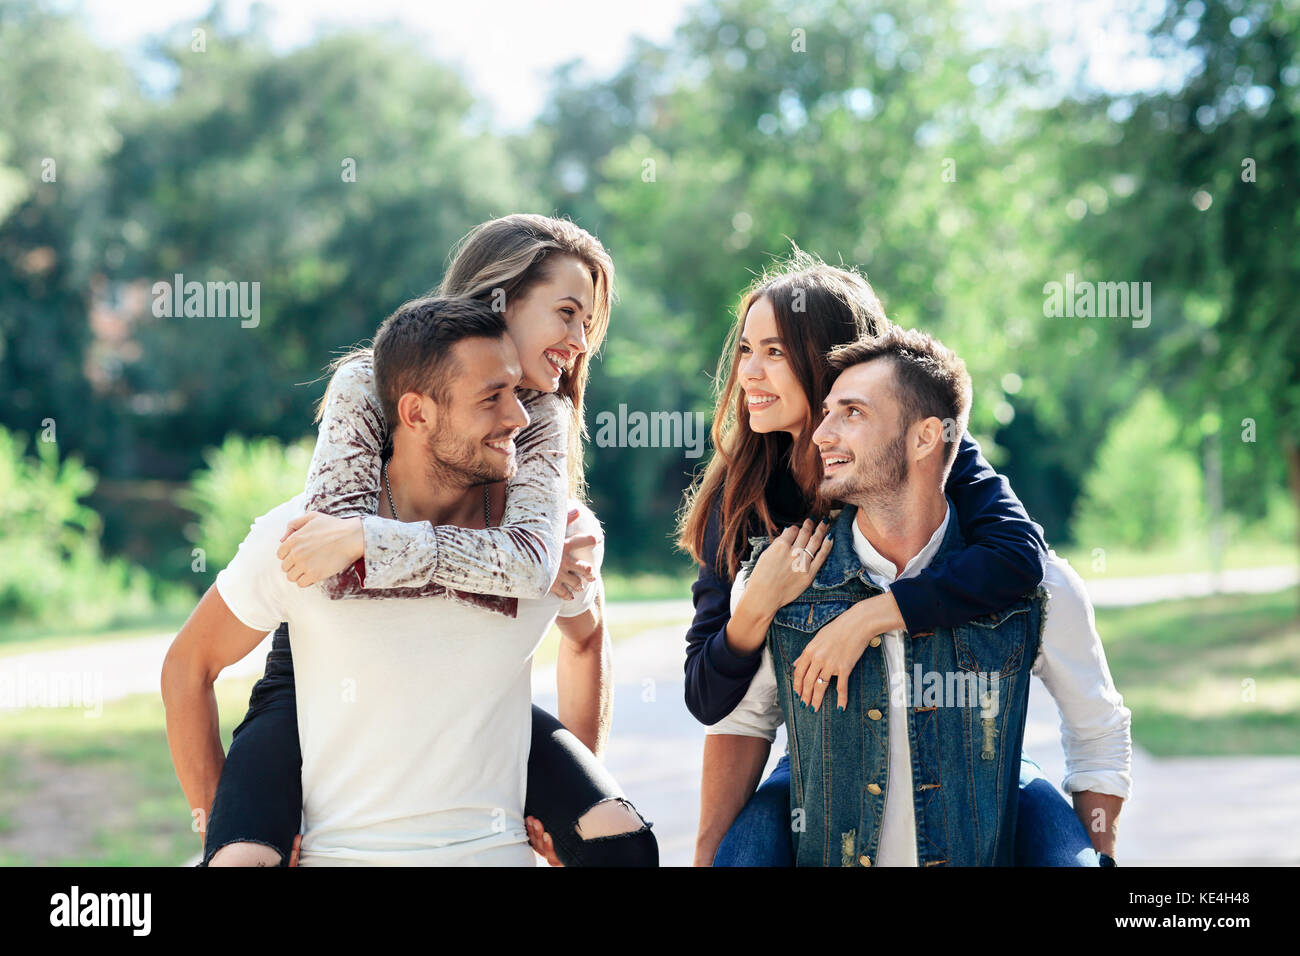 Two loving couples piggyback having fun outdoors. Girls sitting on back of guys smiling. Young women and men playing - Stock Image